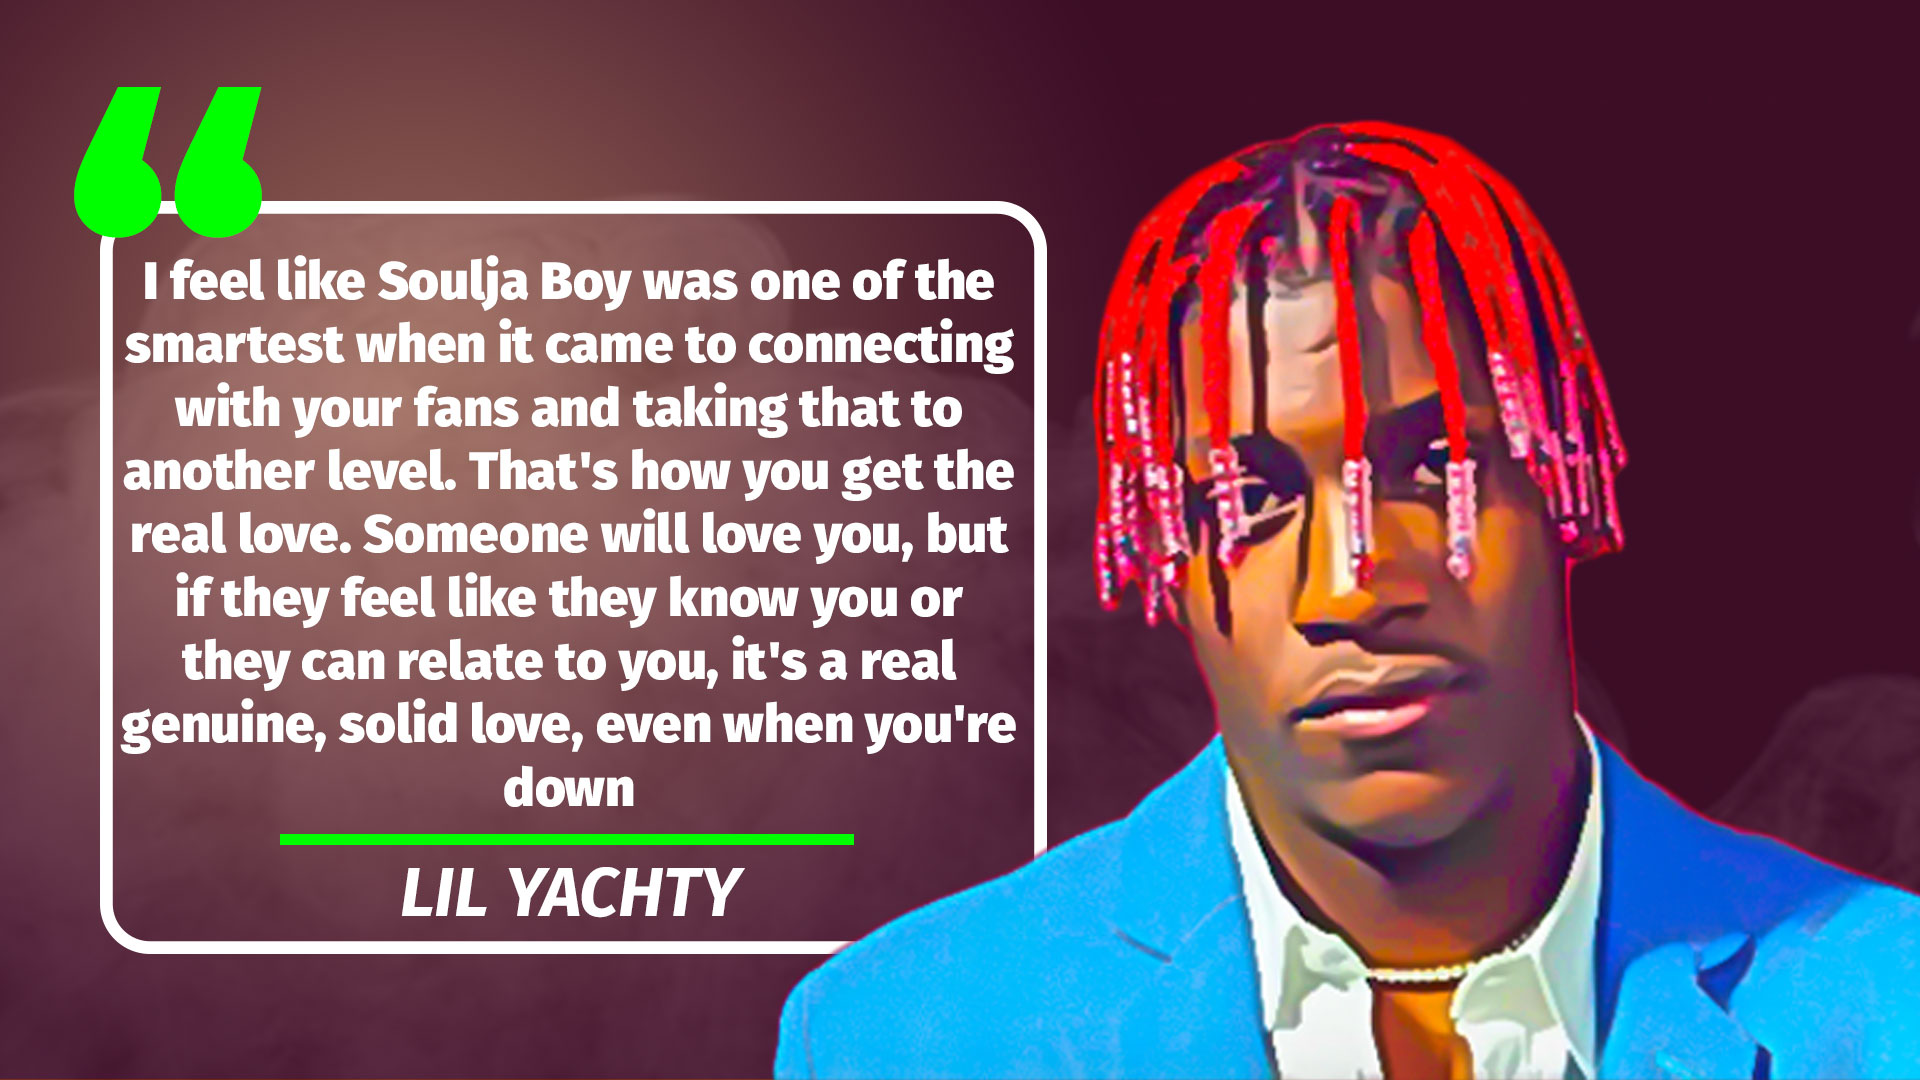 LIL-YACHTY-QUOTE-3